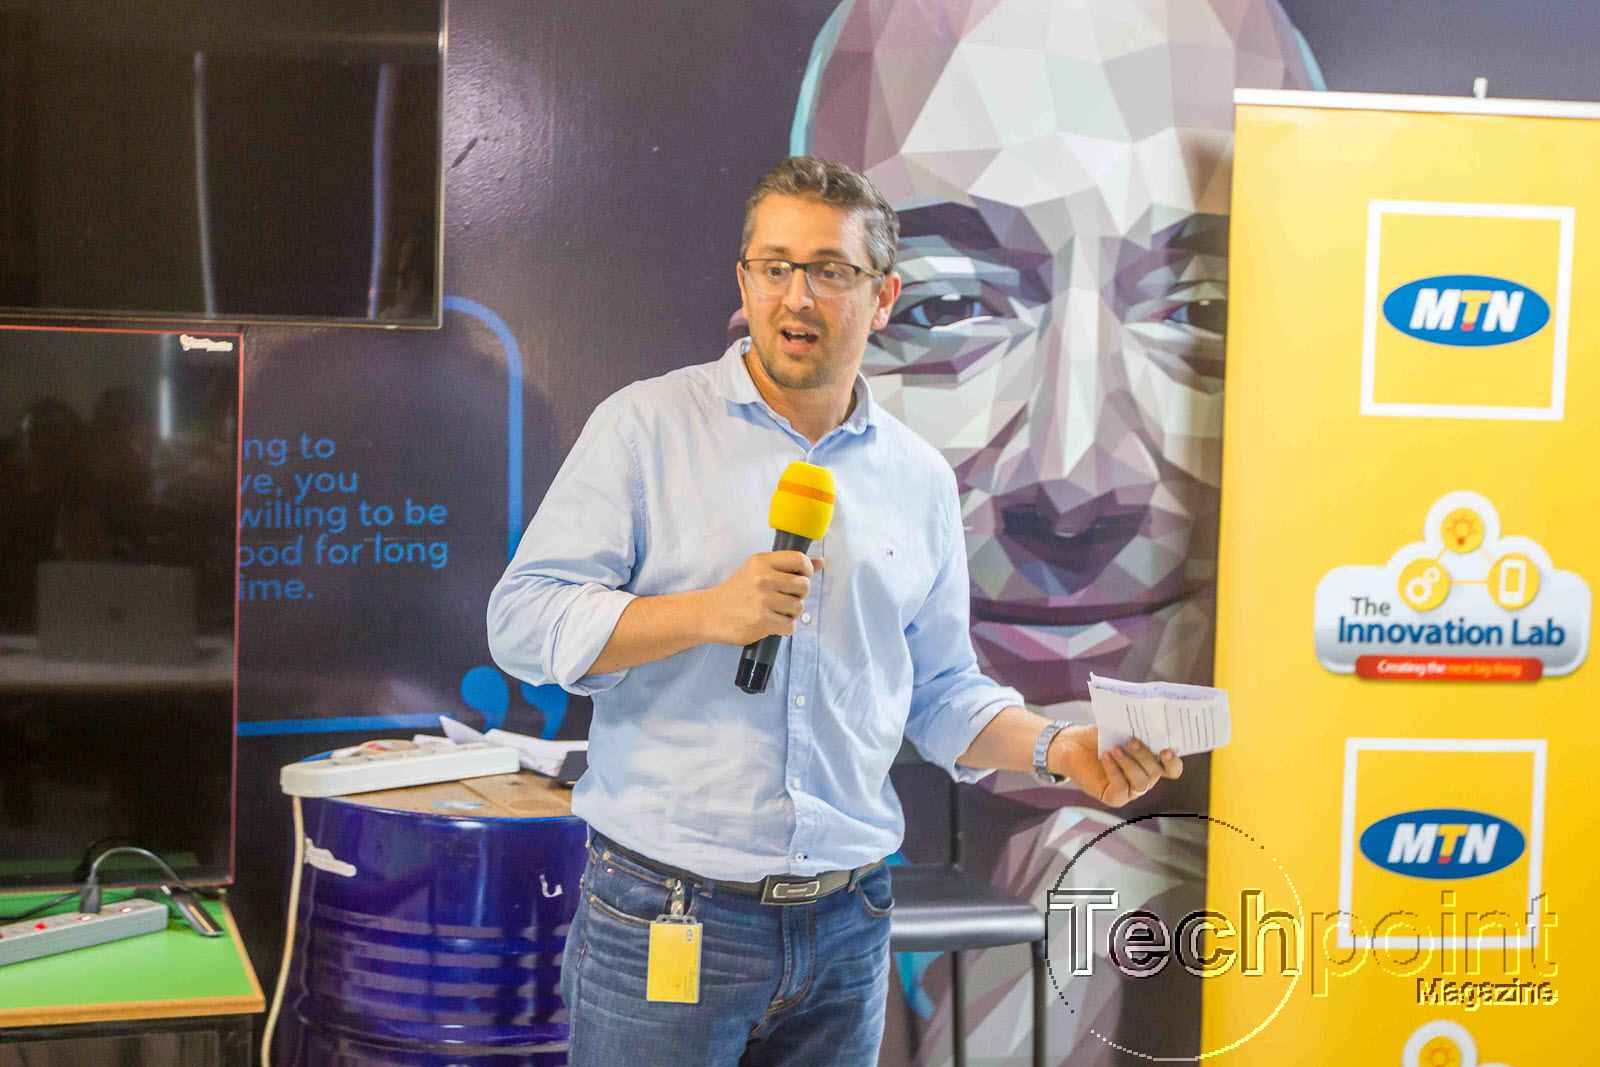 mtn open api challenge mobile money manager